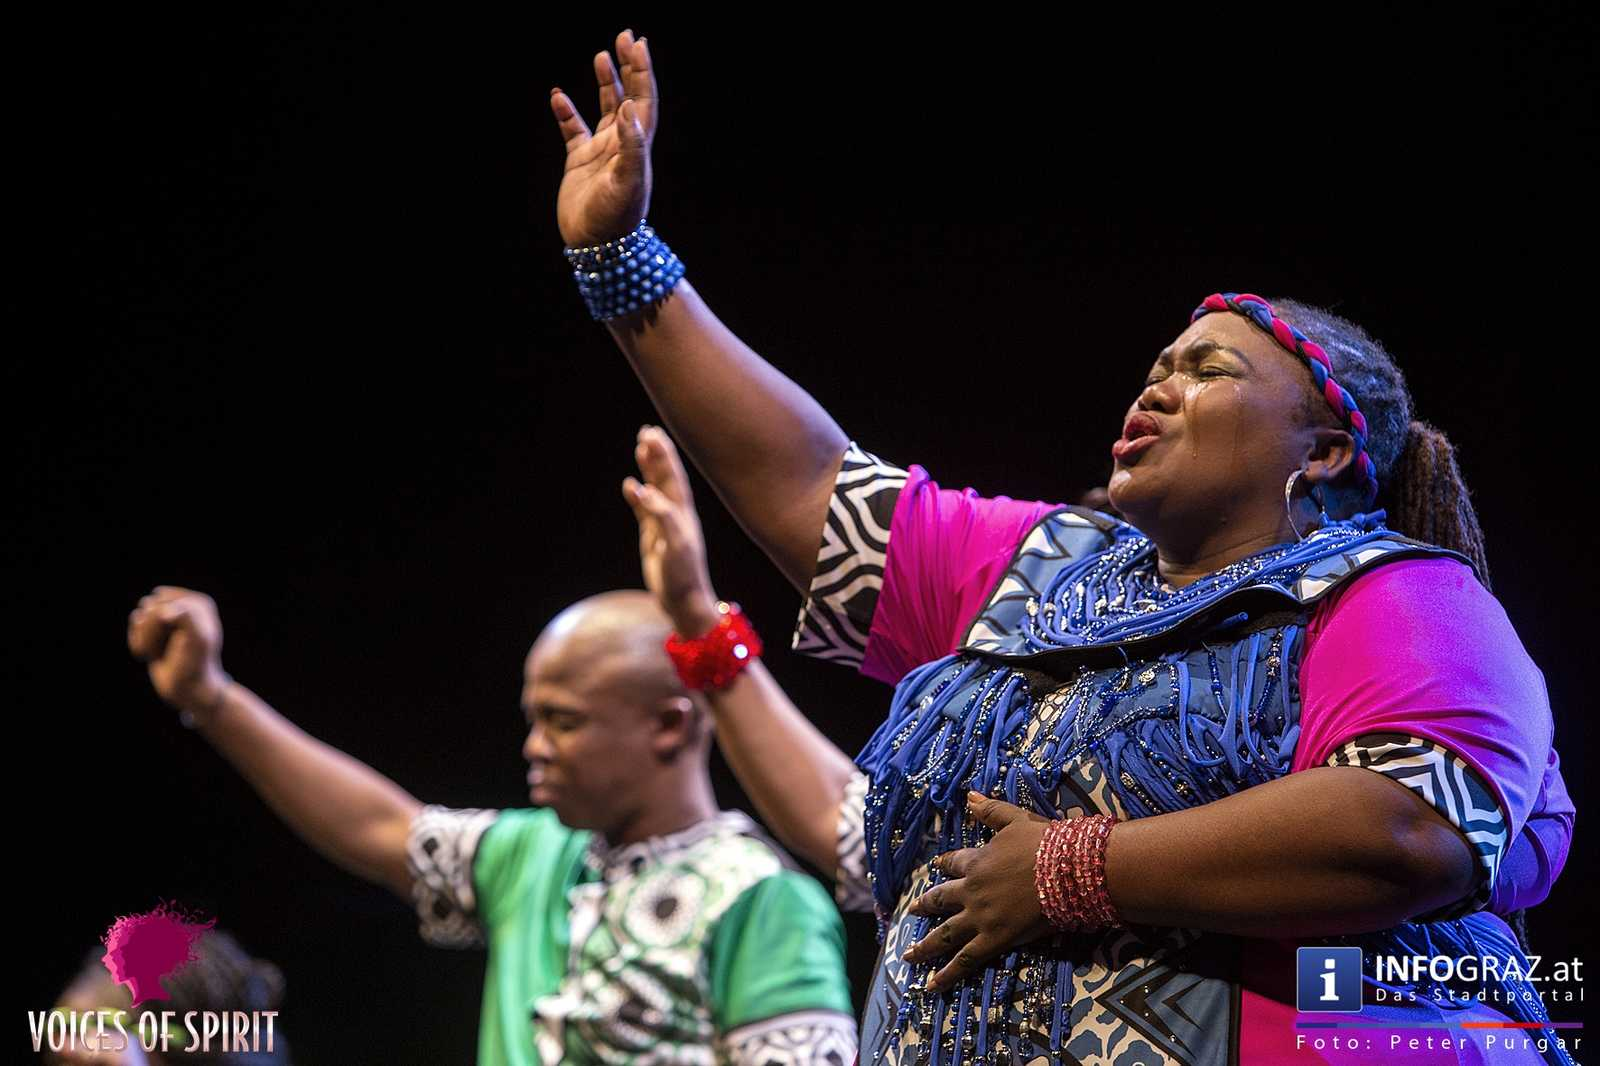 soweto gospel choir internationales chorfestival statdthalle graz voices of spirit eroeffnung festivals 2016 143